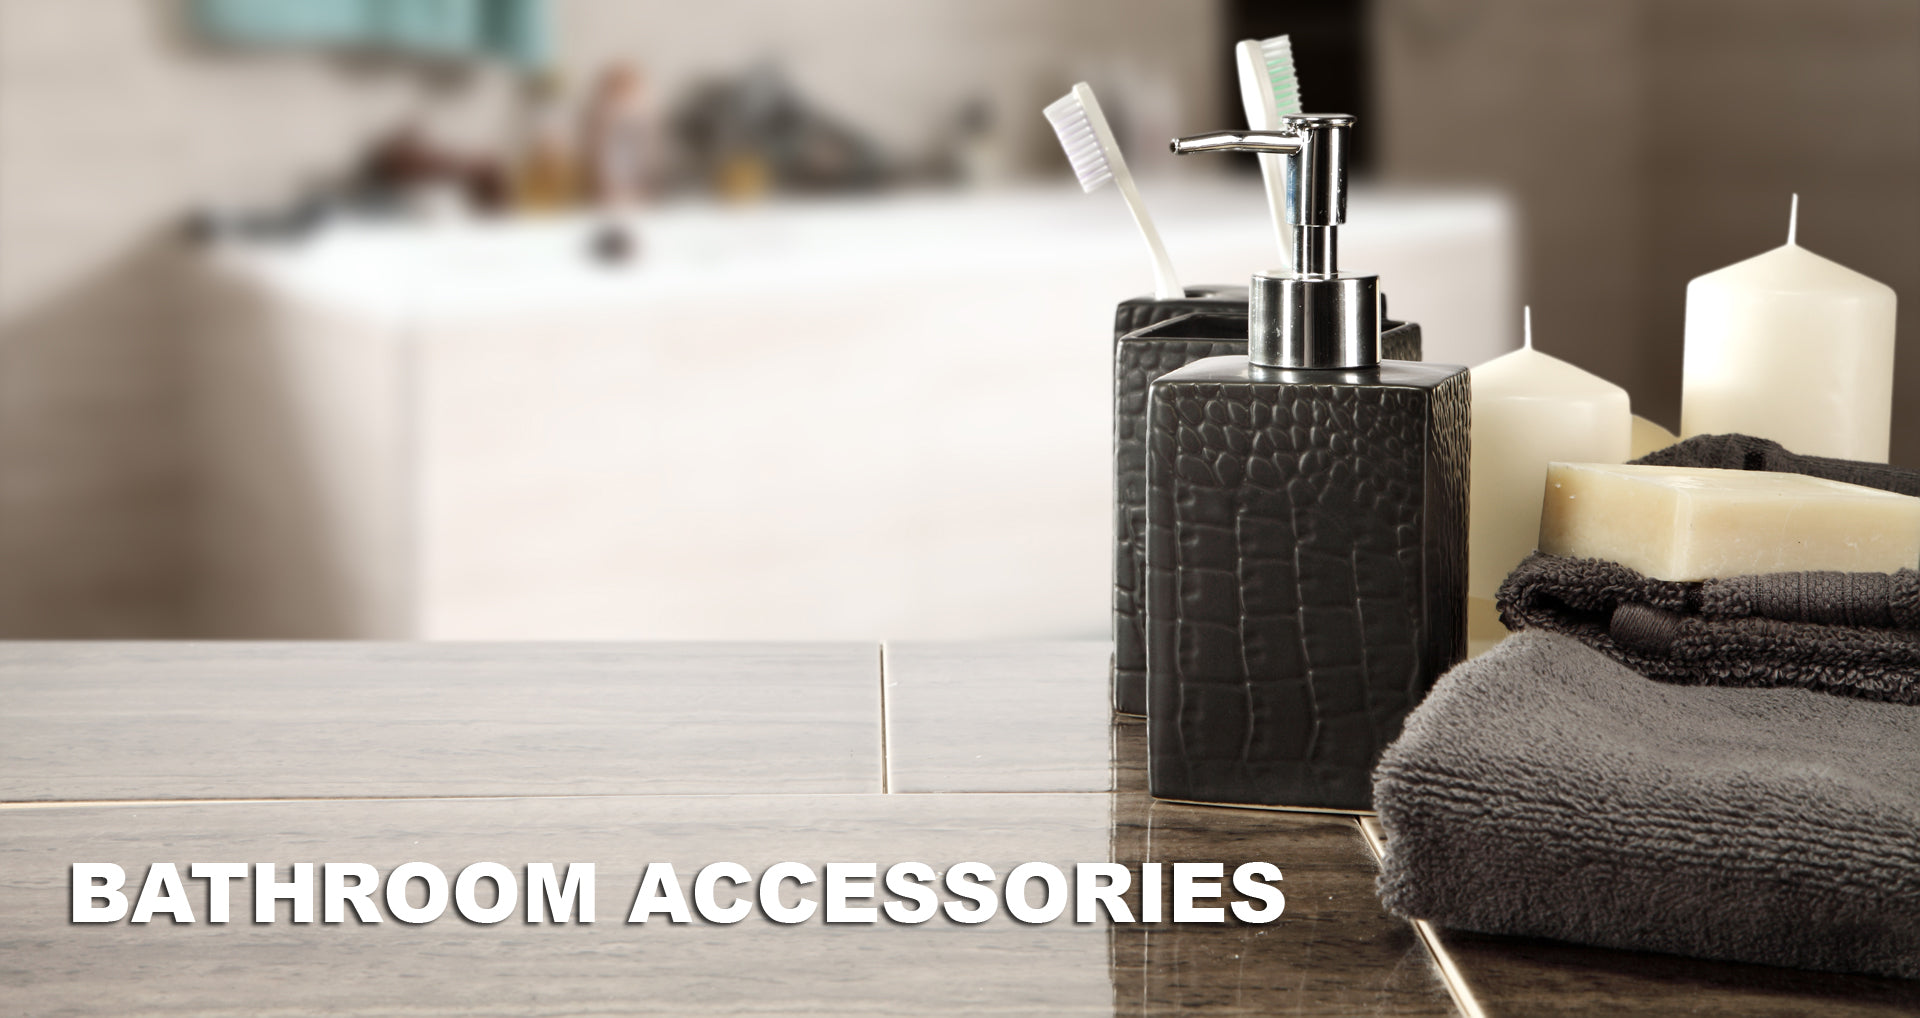 Shop bathroom accessories - Bathroom Accessories